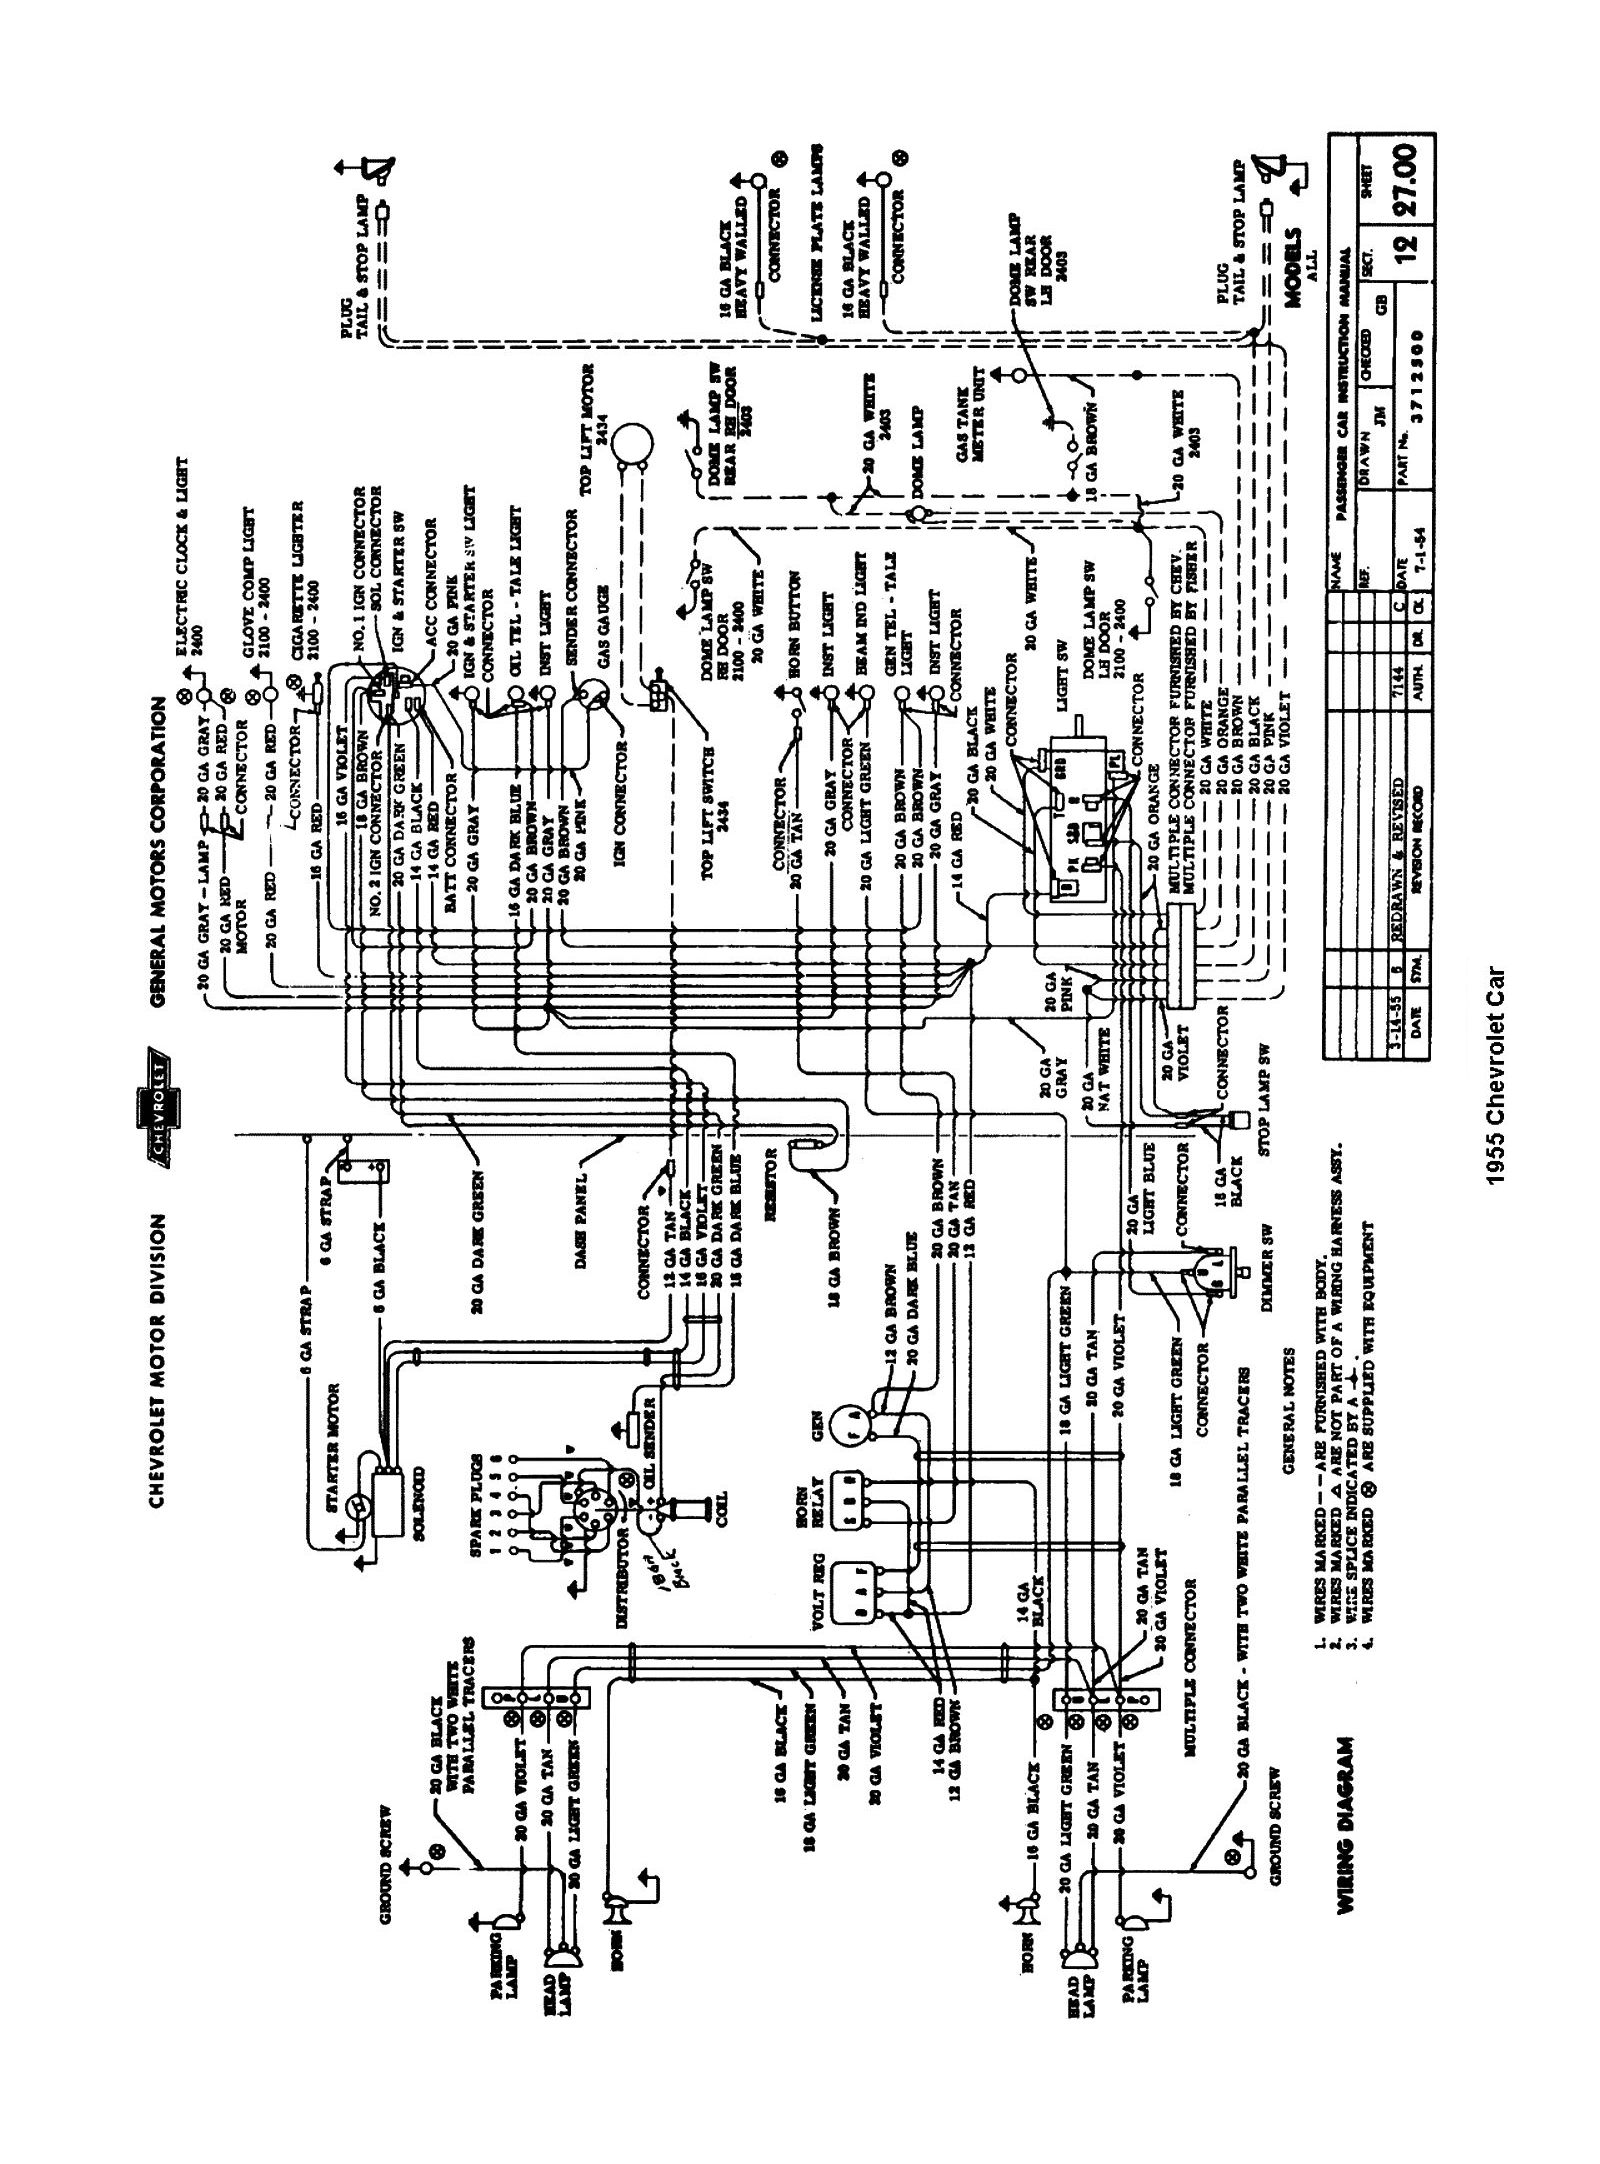 55car1 chevy wiring diagrams 55 chevy headlight switch wiring diagram at honlapkeszites.co